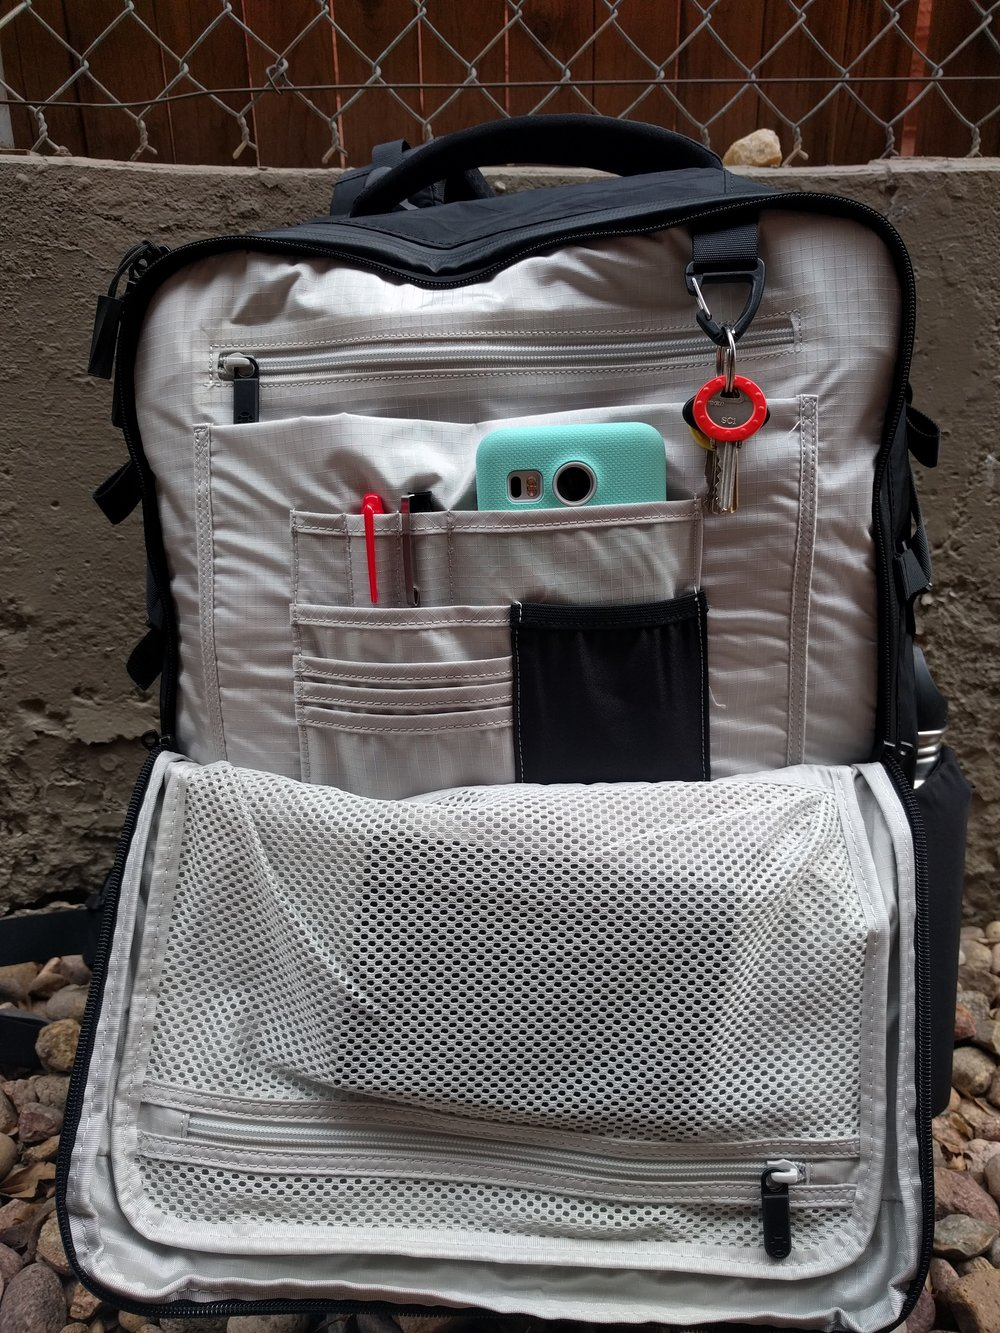 The front organizational pocket is a big improvement from Tortuga's original travel bag. My only complaint is that black piece of fabric which, while stretchy, was not large enough to hold my medium sized Nexus 5x. Travelers with a Pixel XL or iPhone Plus will find these phone spaces completely inadequate.